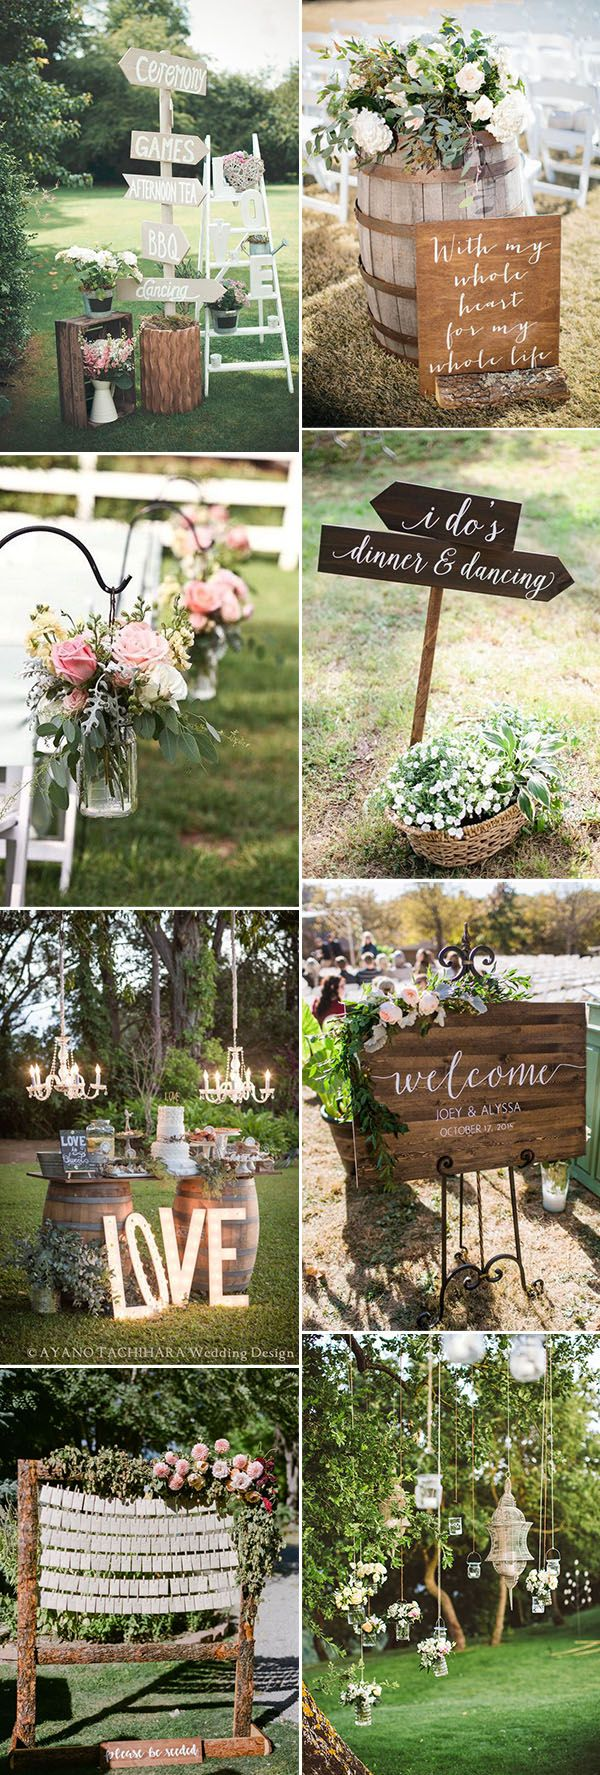 Wedding decorations themes ideas october 2018  Most Inspiring GardenInspired Wedding Ideas in   grad